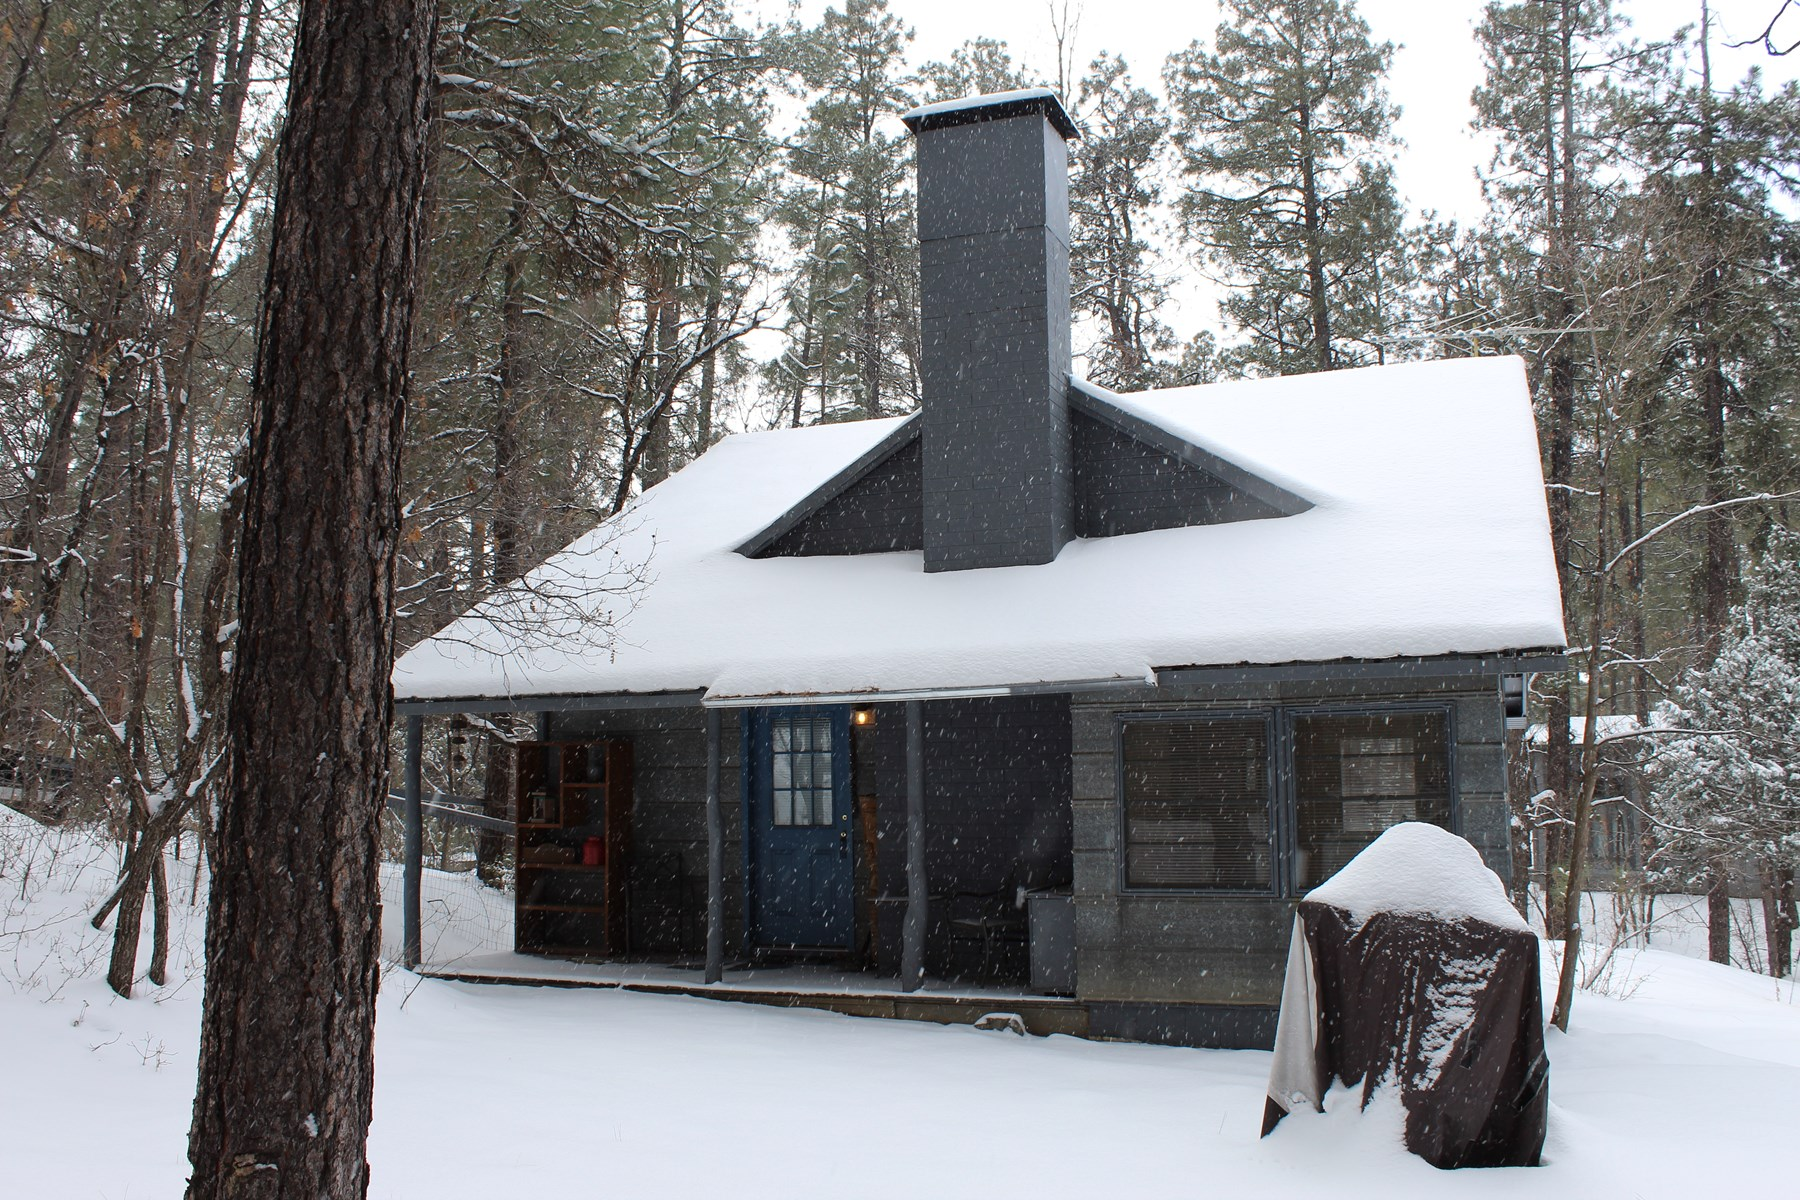 Cabin in the Pines of Prescott Arizona